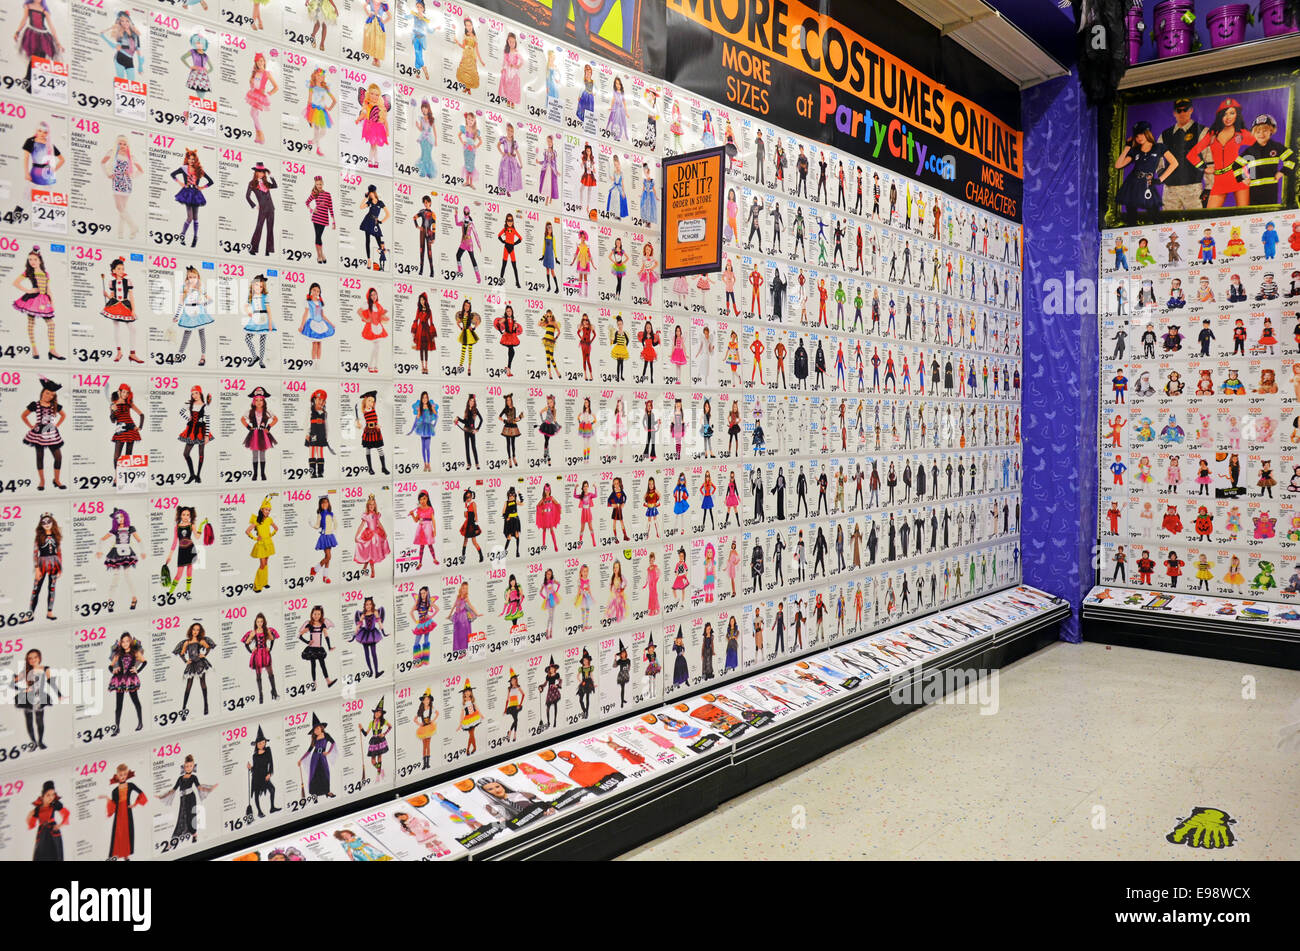 display of halloween costumes for sale at the party city store in greenwich village manhattan new york city